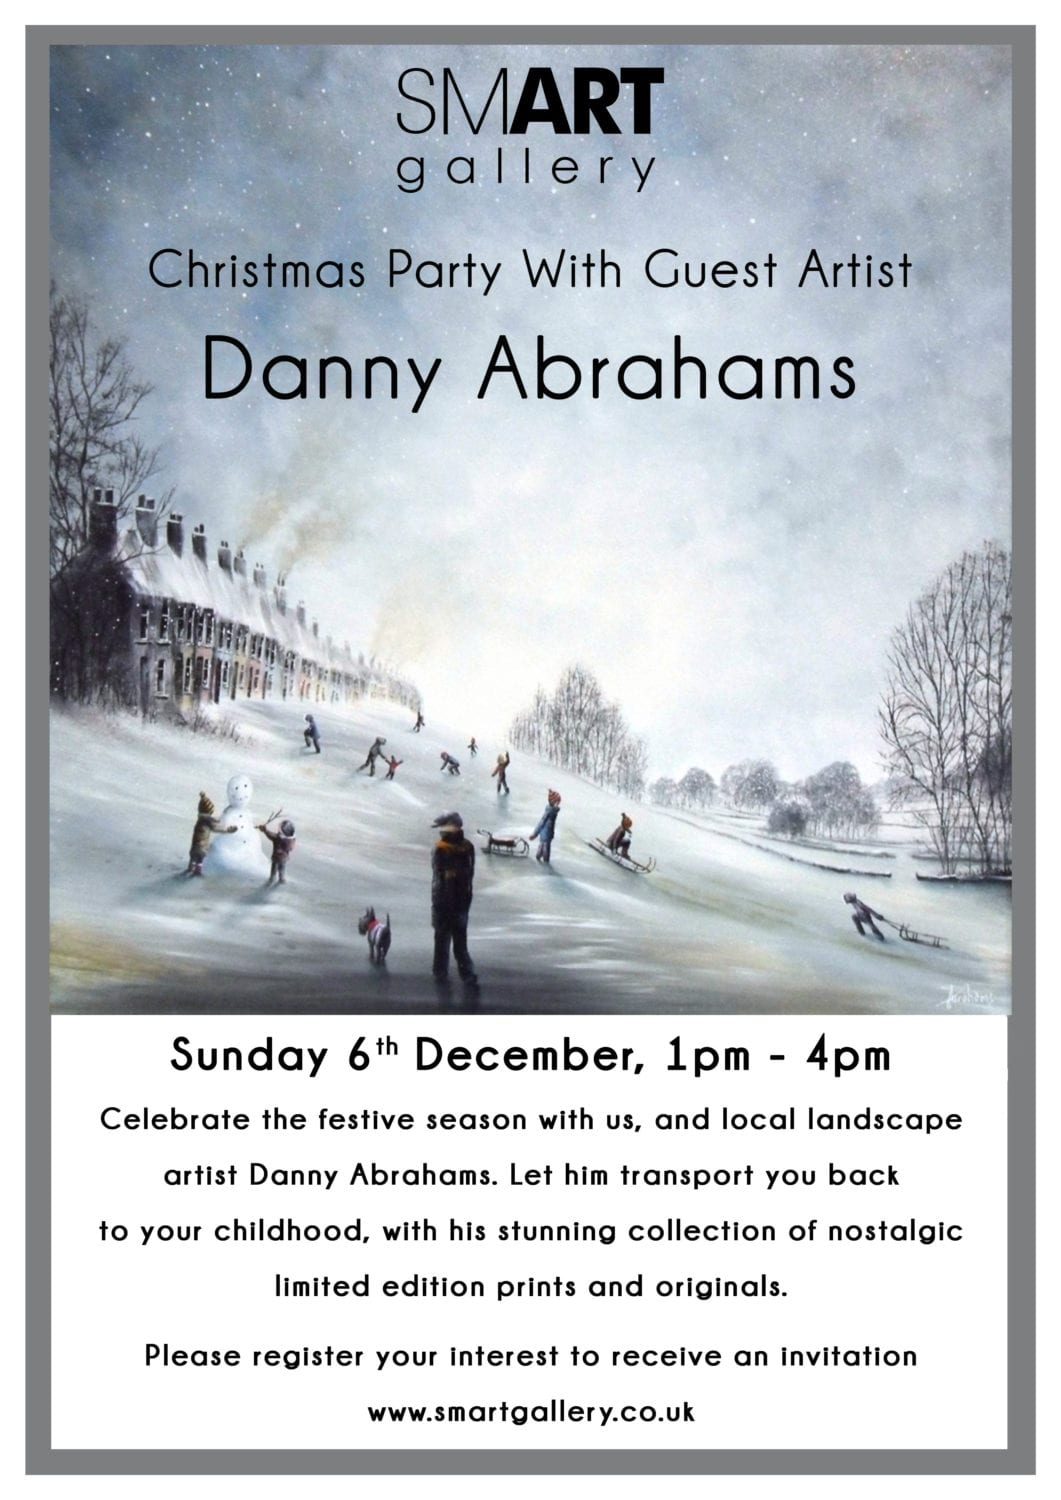 Christmas Party with Guest Artist Danny Abrahams | Sunday 6th December 2015